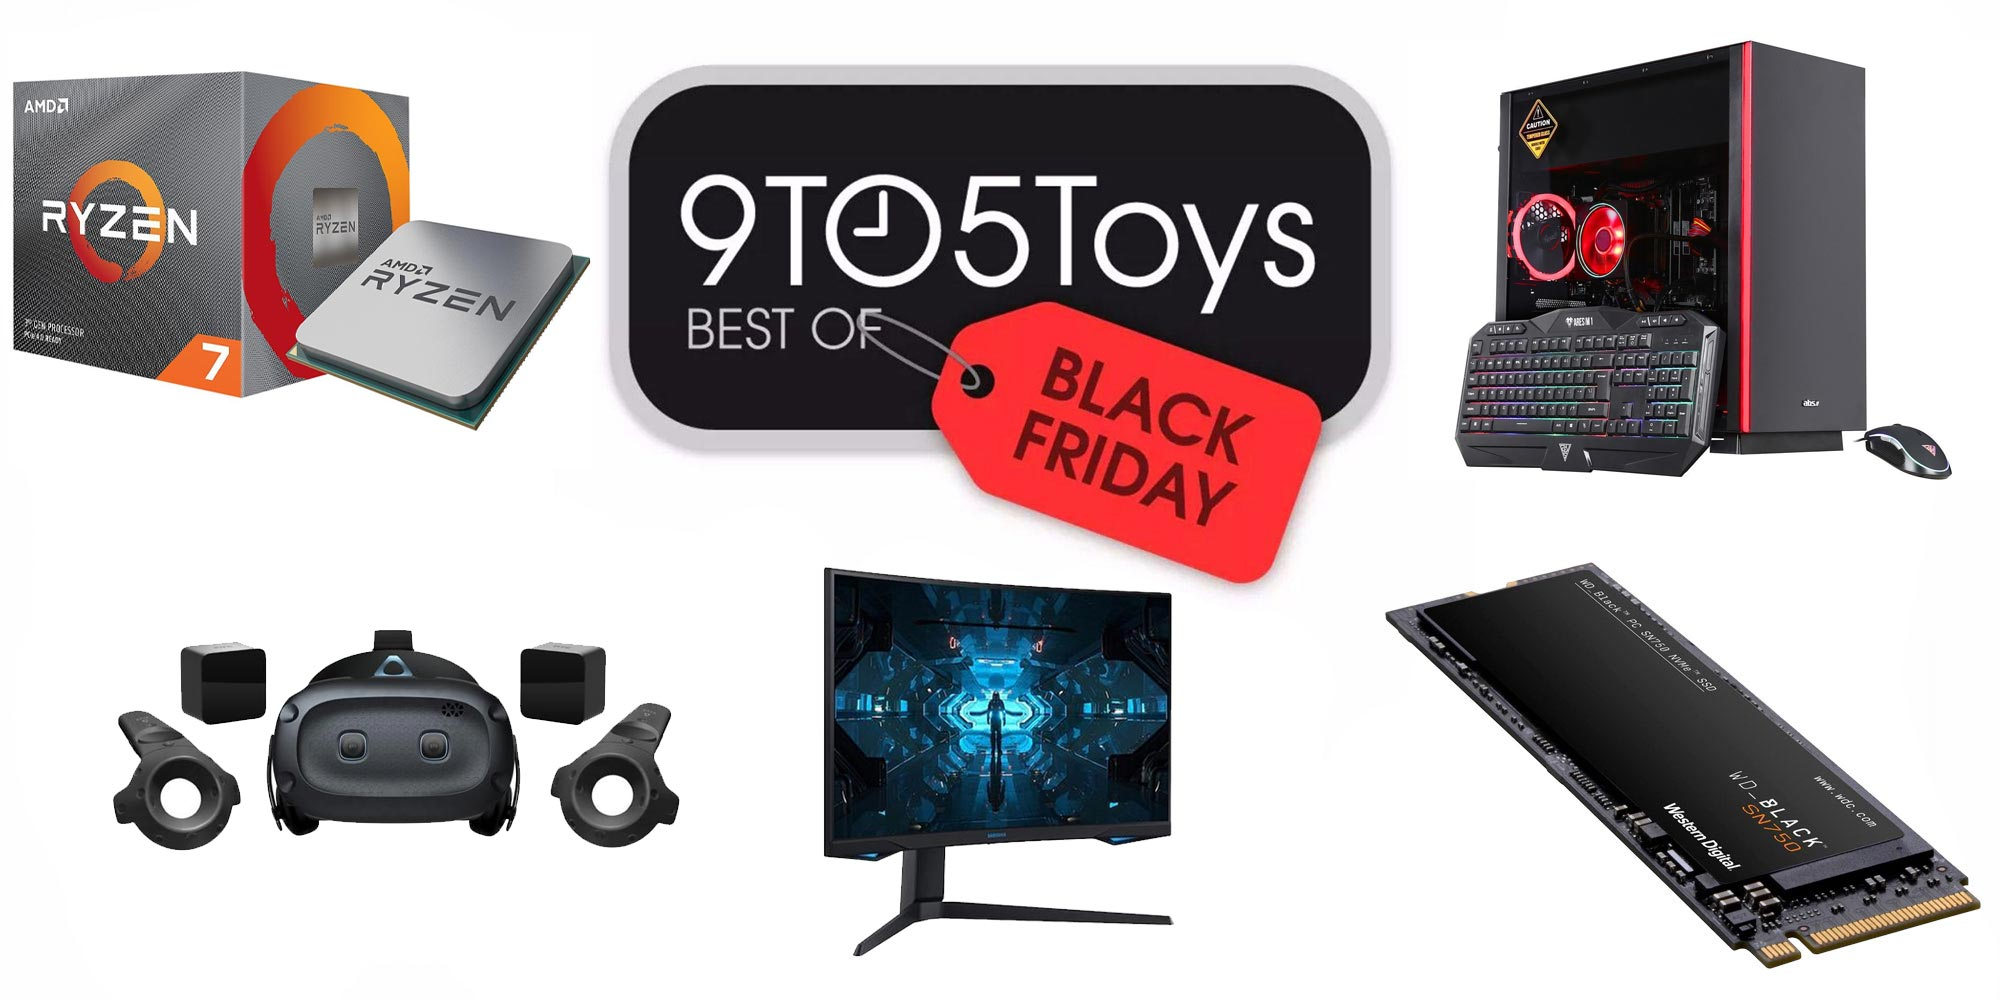 Best of Black Friday 2020 – PC Gaming: 27-inch 240Hz monitor $500, RTX 2070 Super PC $1,250, more - 9to5Toys